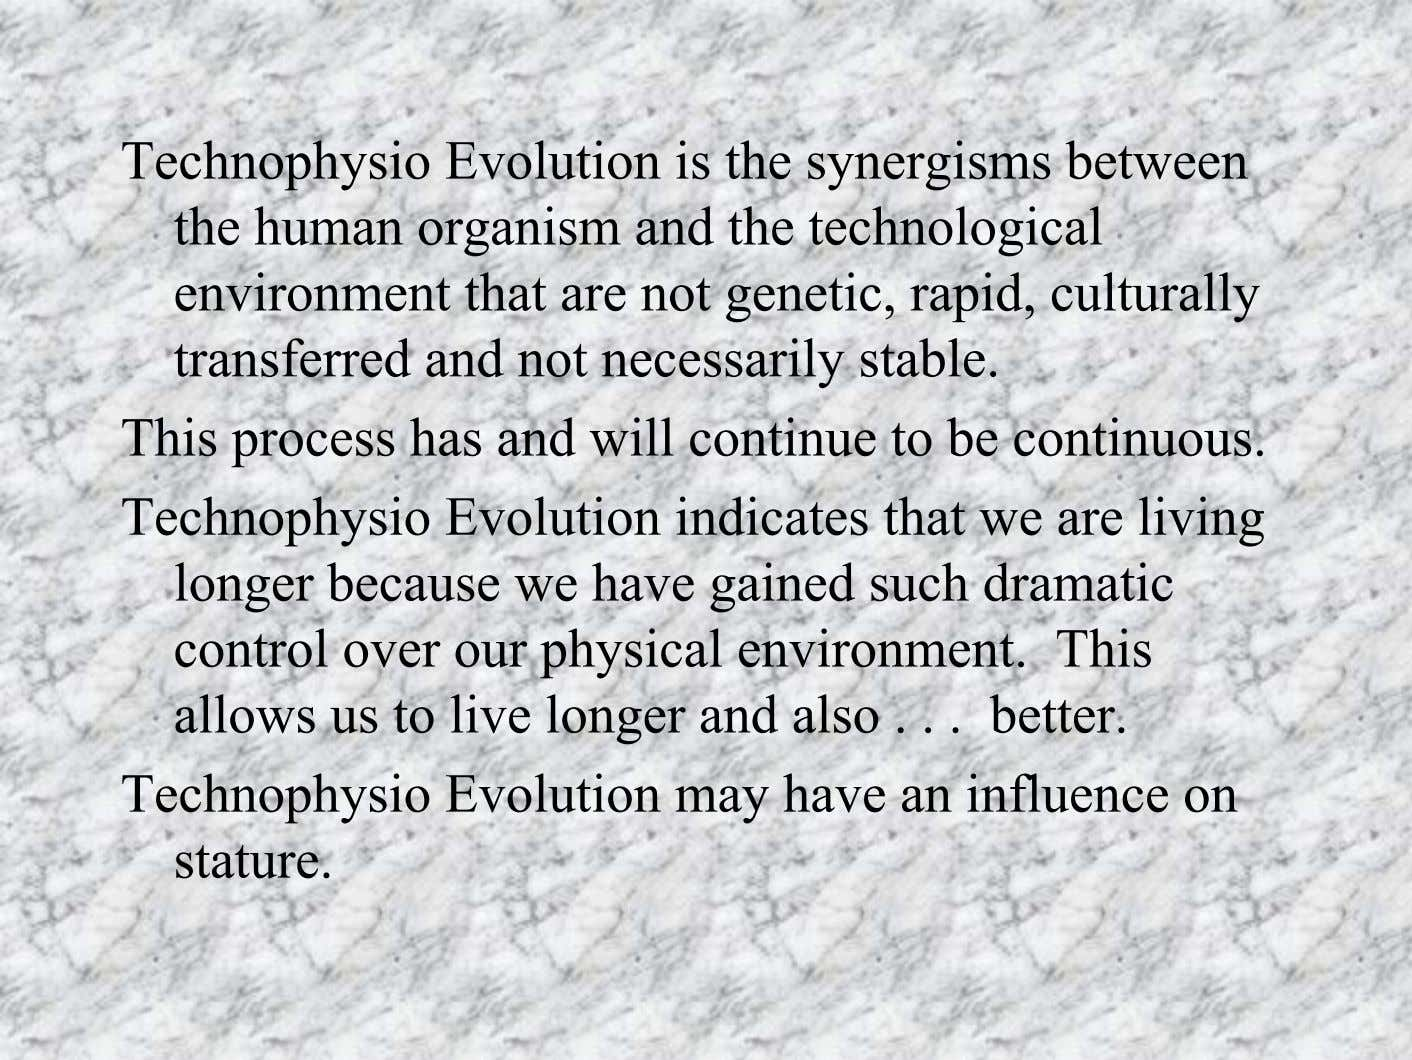 Technophysio Evolution is the synergisms between the human organism and the technological environment that are